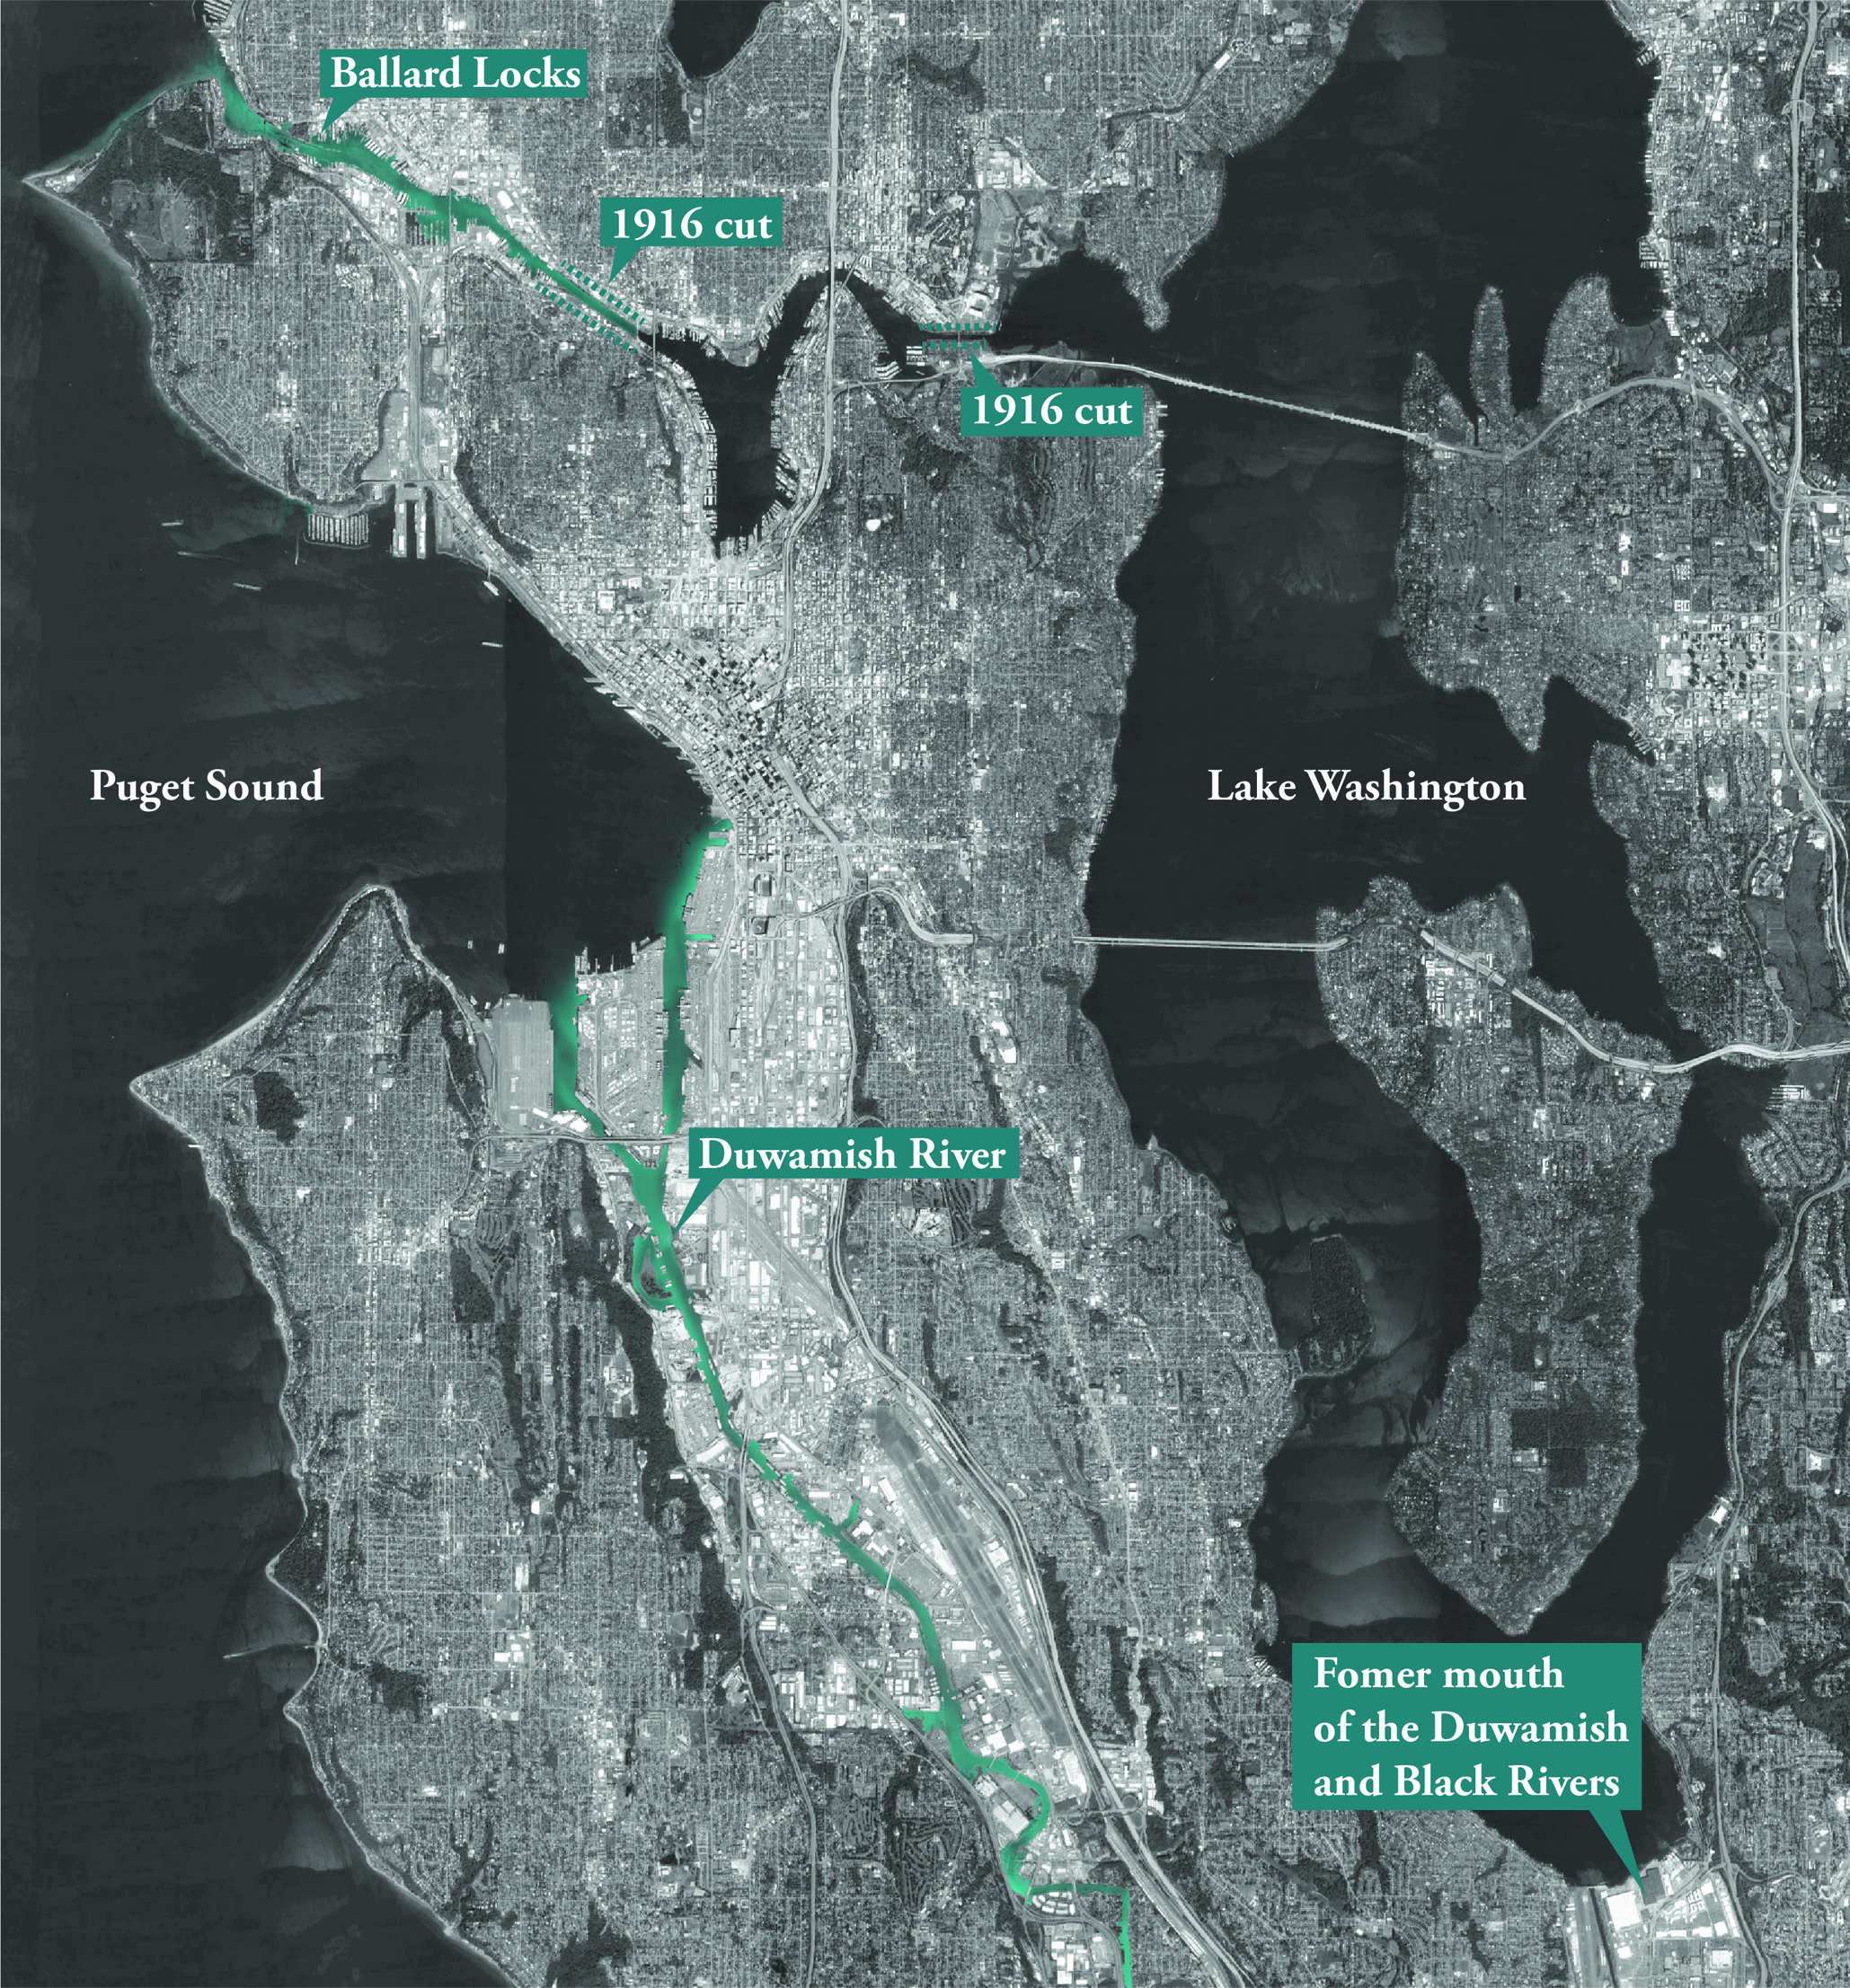 Image 1 / Map of Seattle's urban landscape and waterways. Image by Sara Jacobs